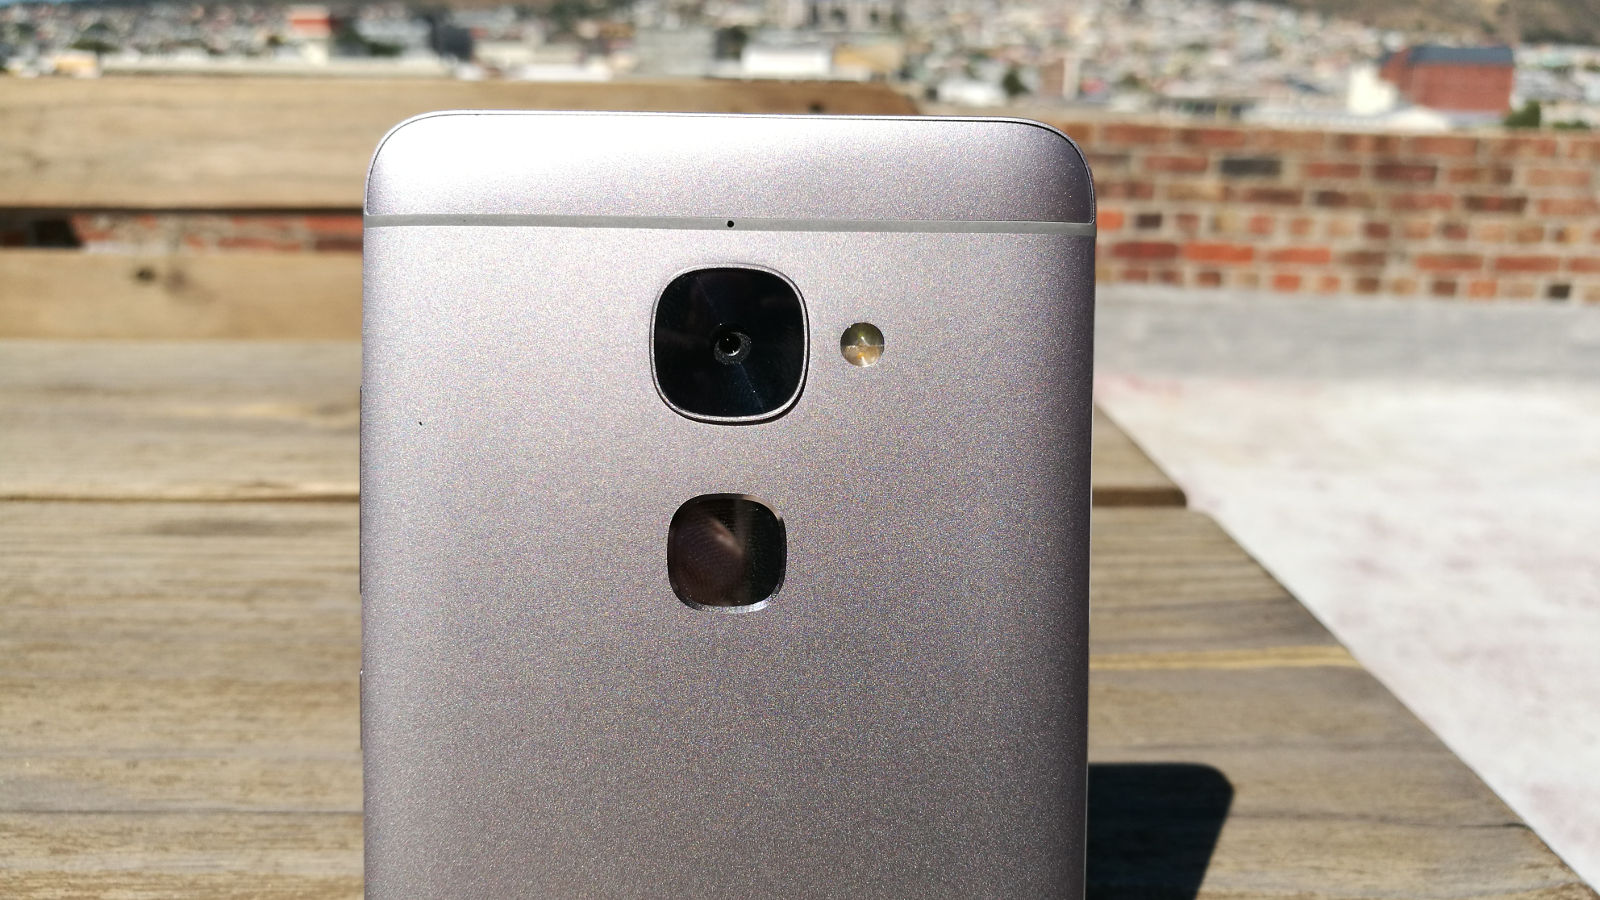 LeEco Le 2 review: it's a great phone but don't buy it